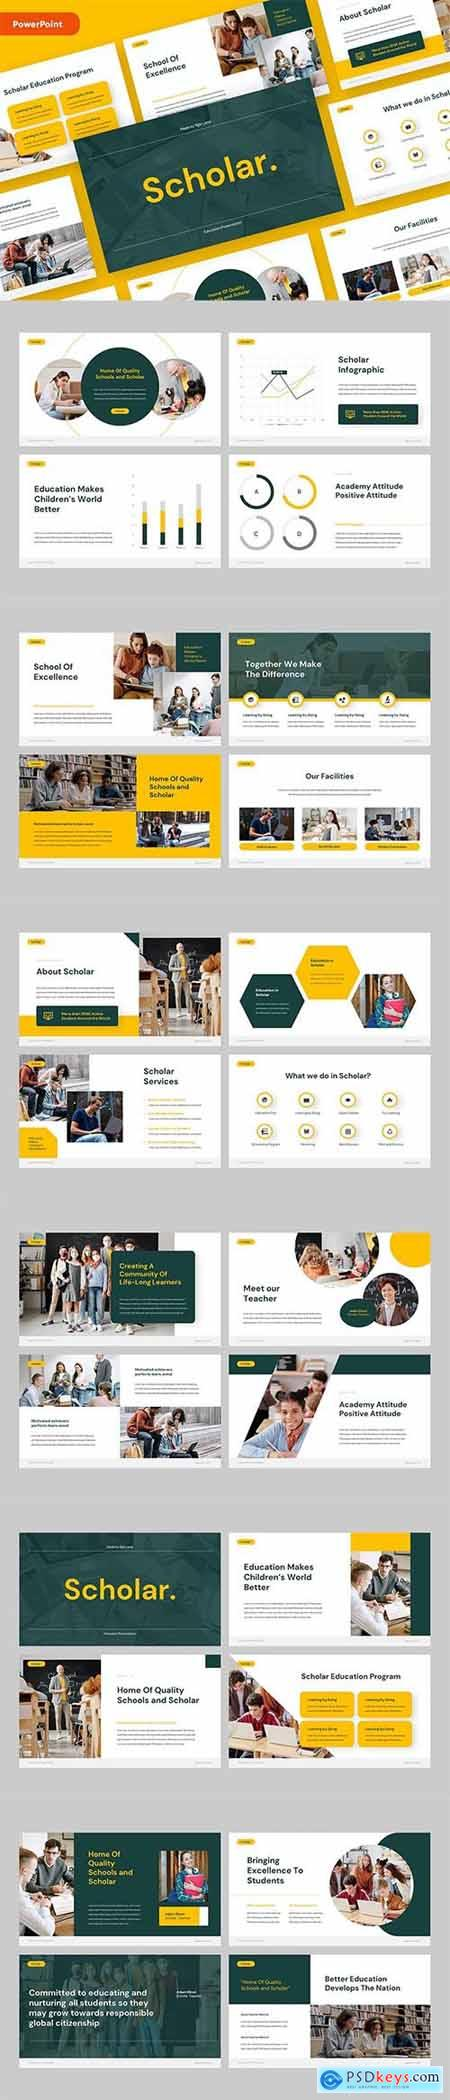 SCHOLAR - Education PowerPoint, Keynote and Google Slides Template